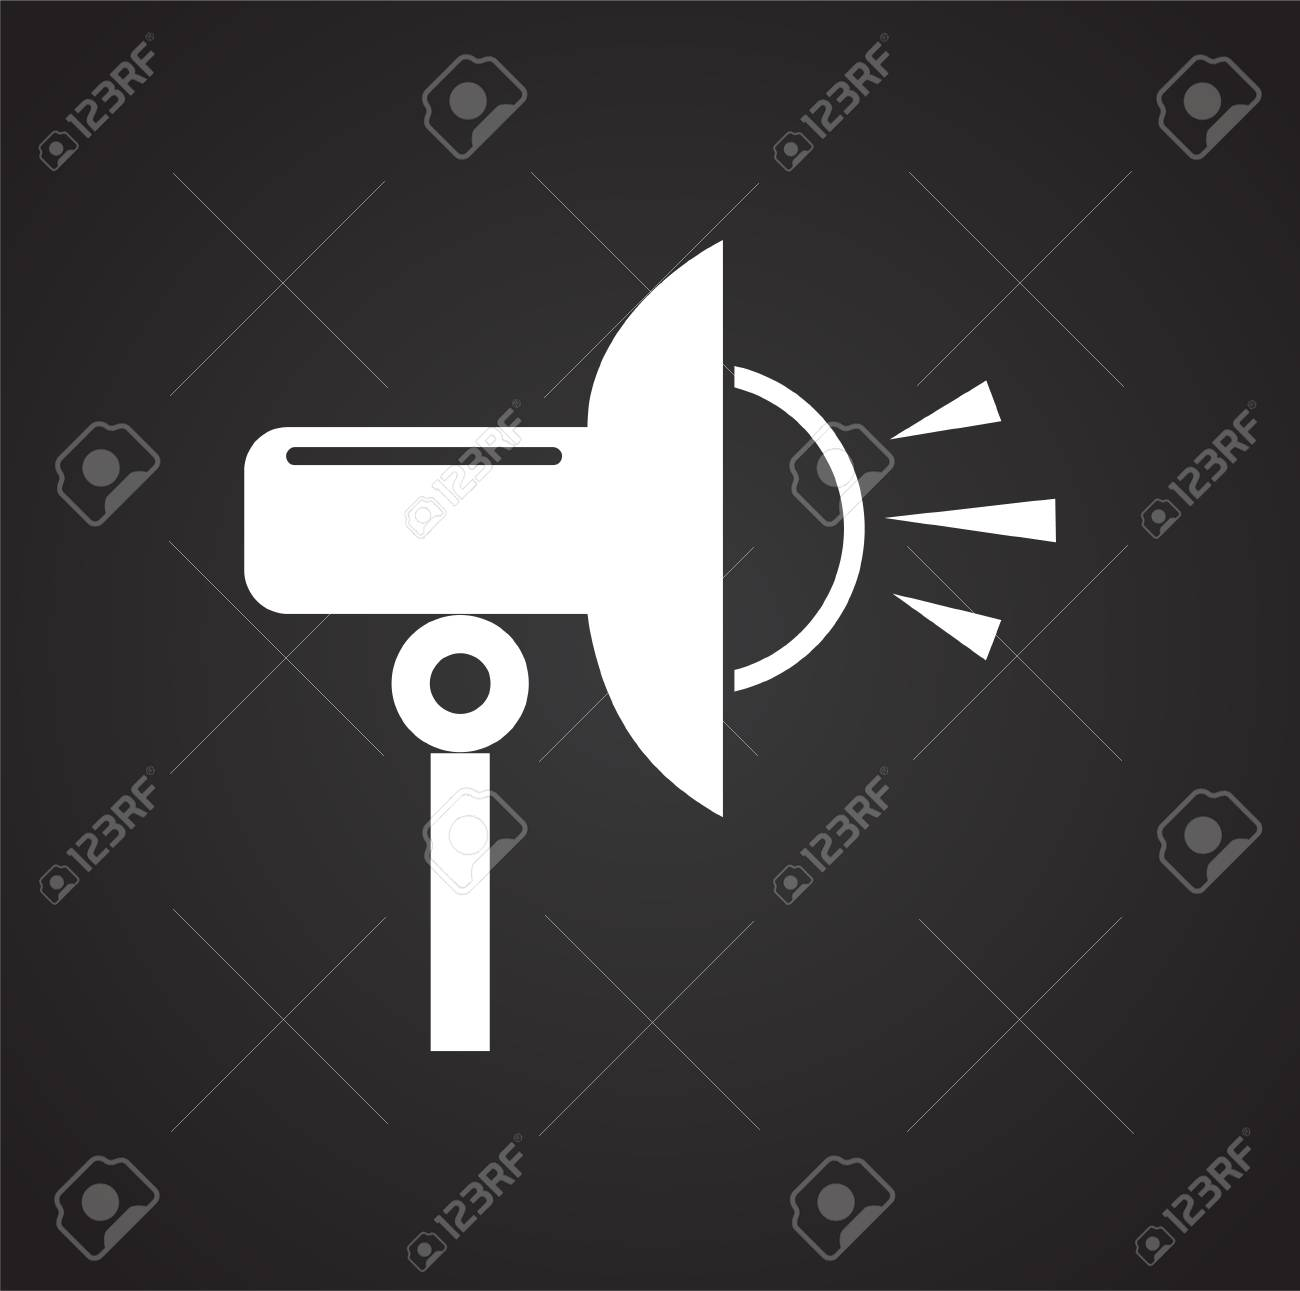 Studio Flash Strobe Icon On Black Background For Graphic And Stock Photo Picture And Royalty Free Image Image 113219090